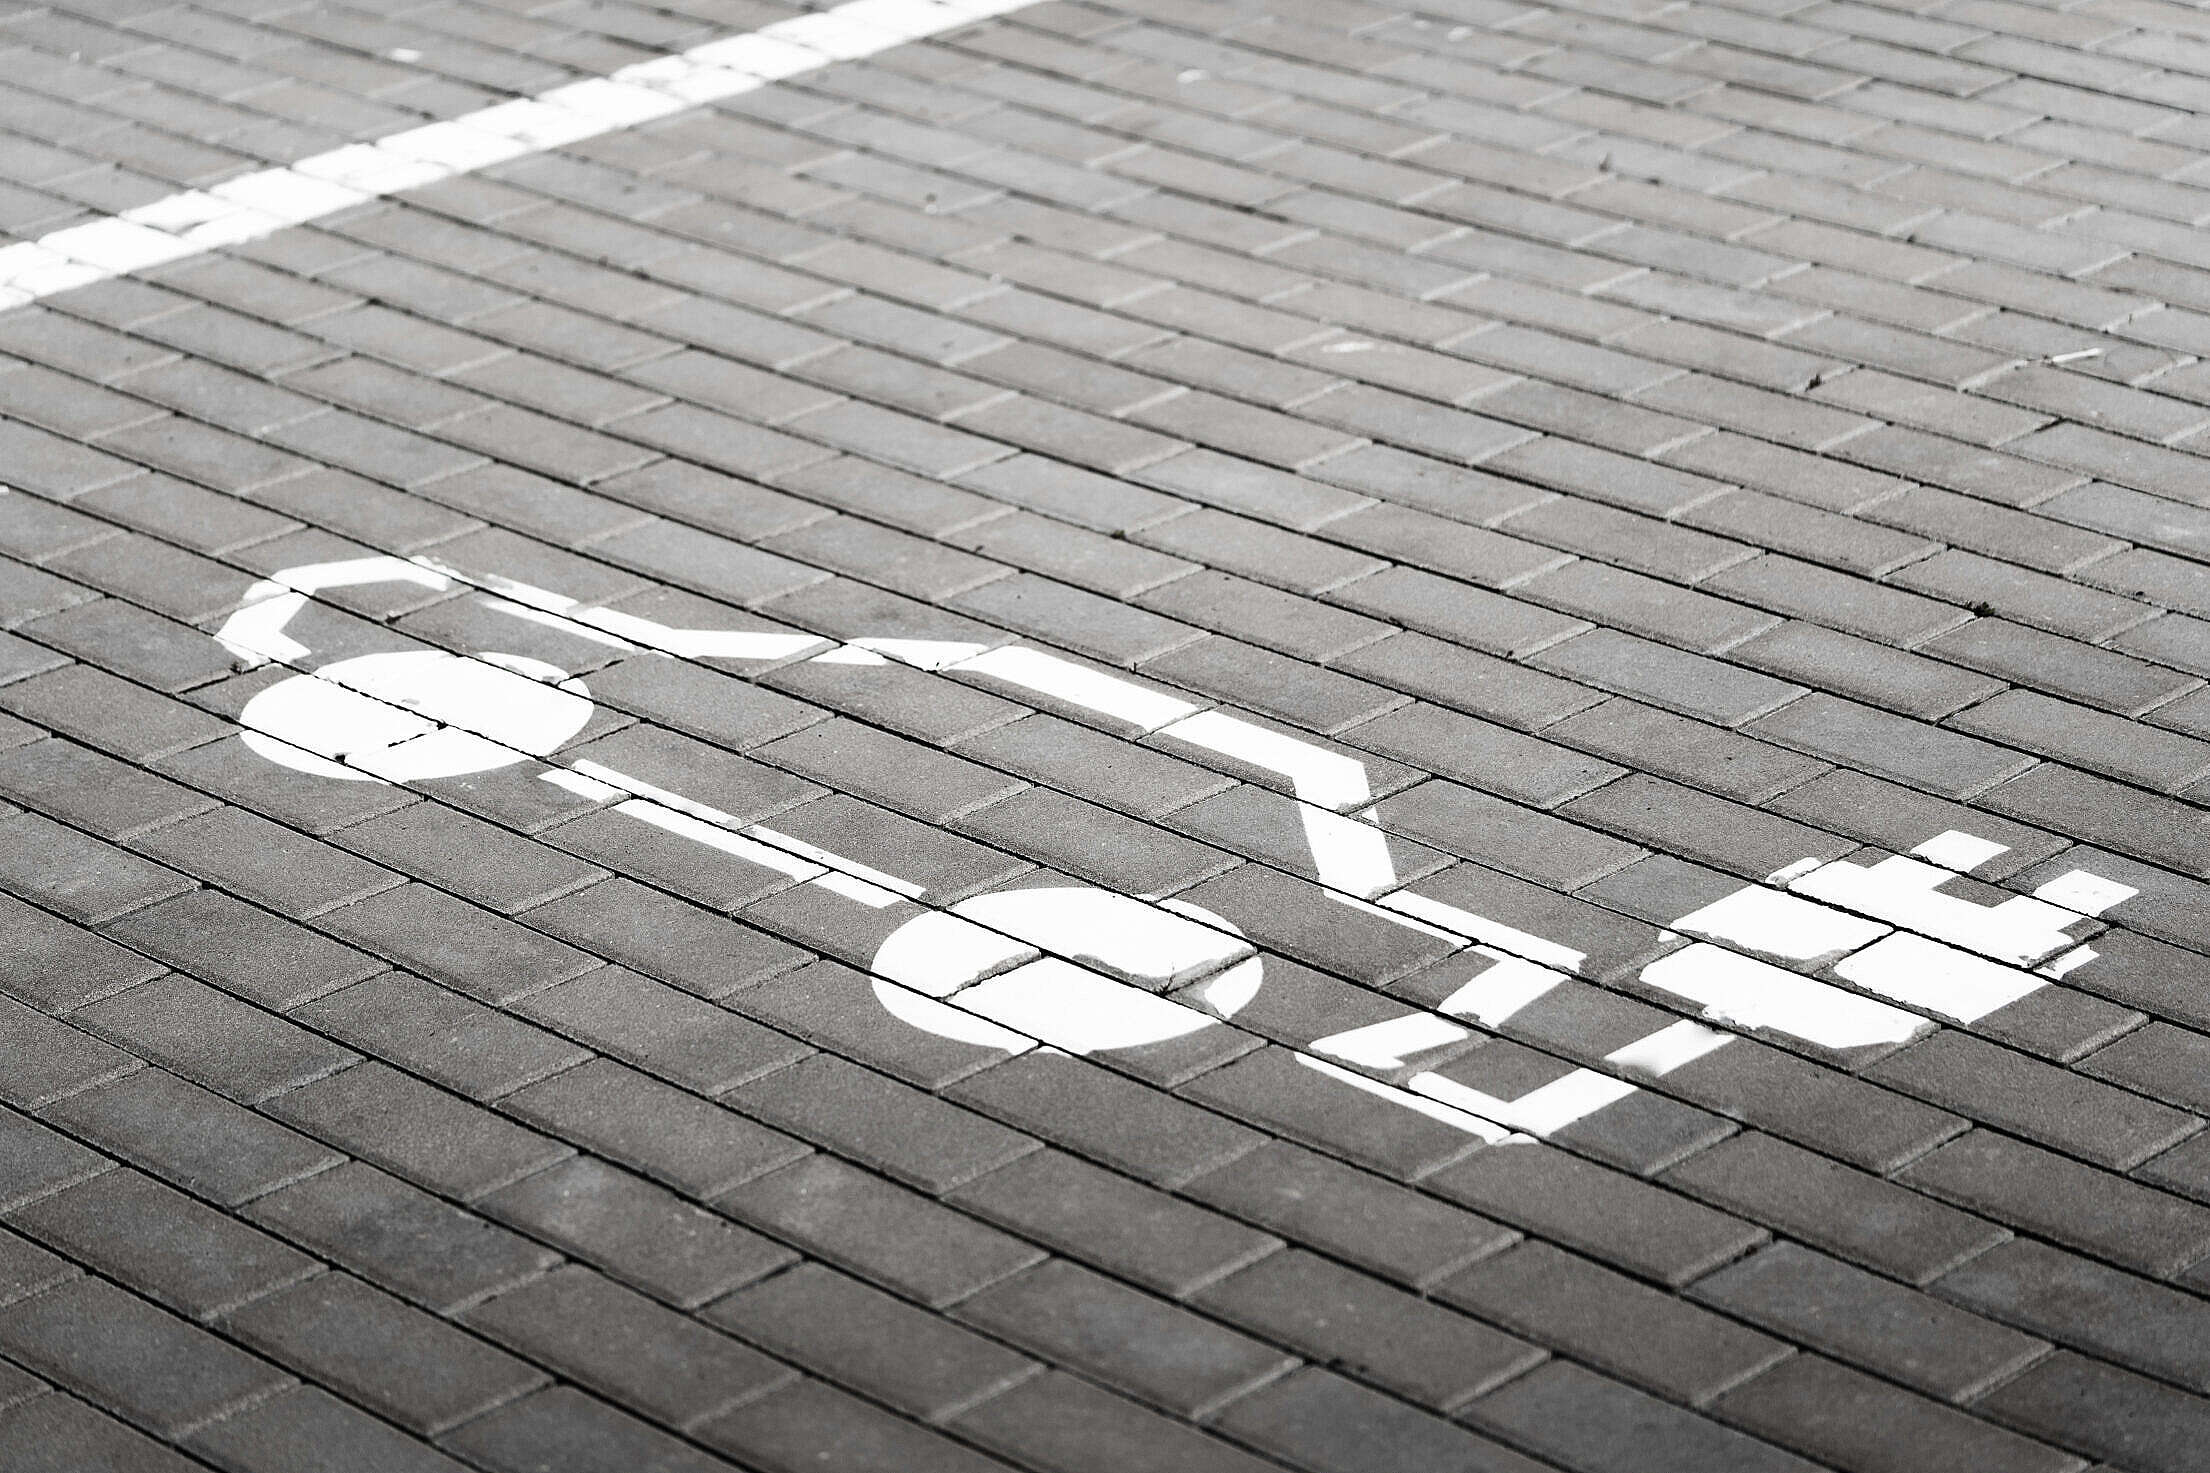 Parking Space for Electric Cars Charging Free Stock Photo